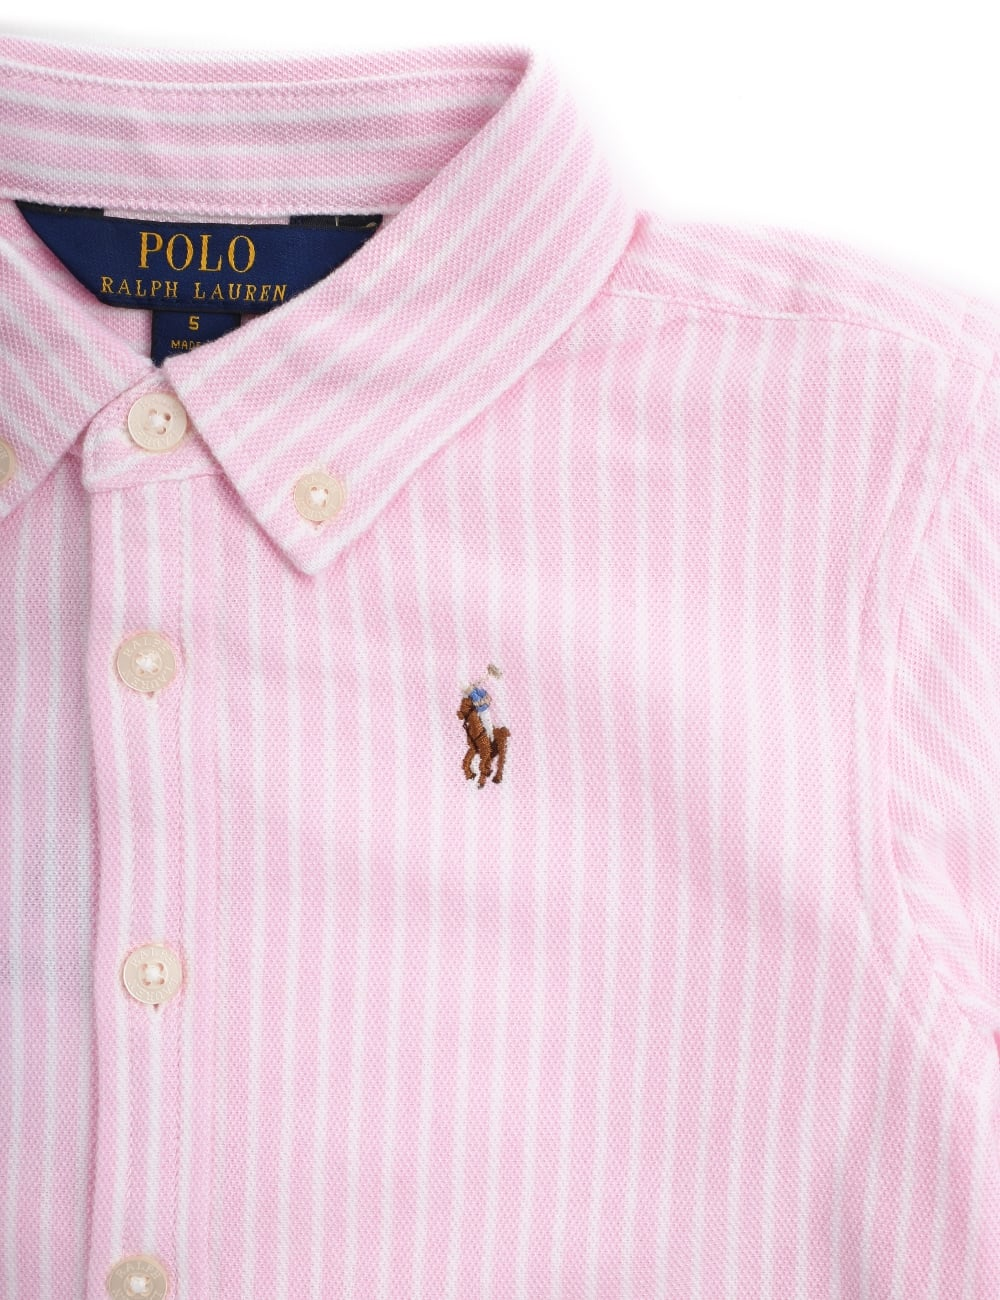 Lauren Long Sleeve Shirt Girls Polo Ralph Striped Toddler TF1JK3ucl